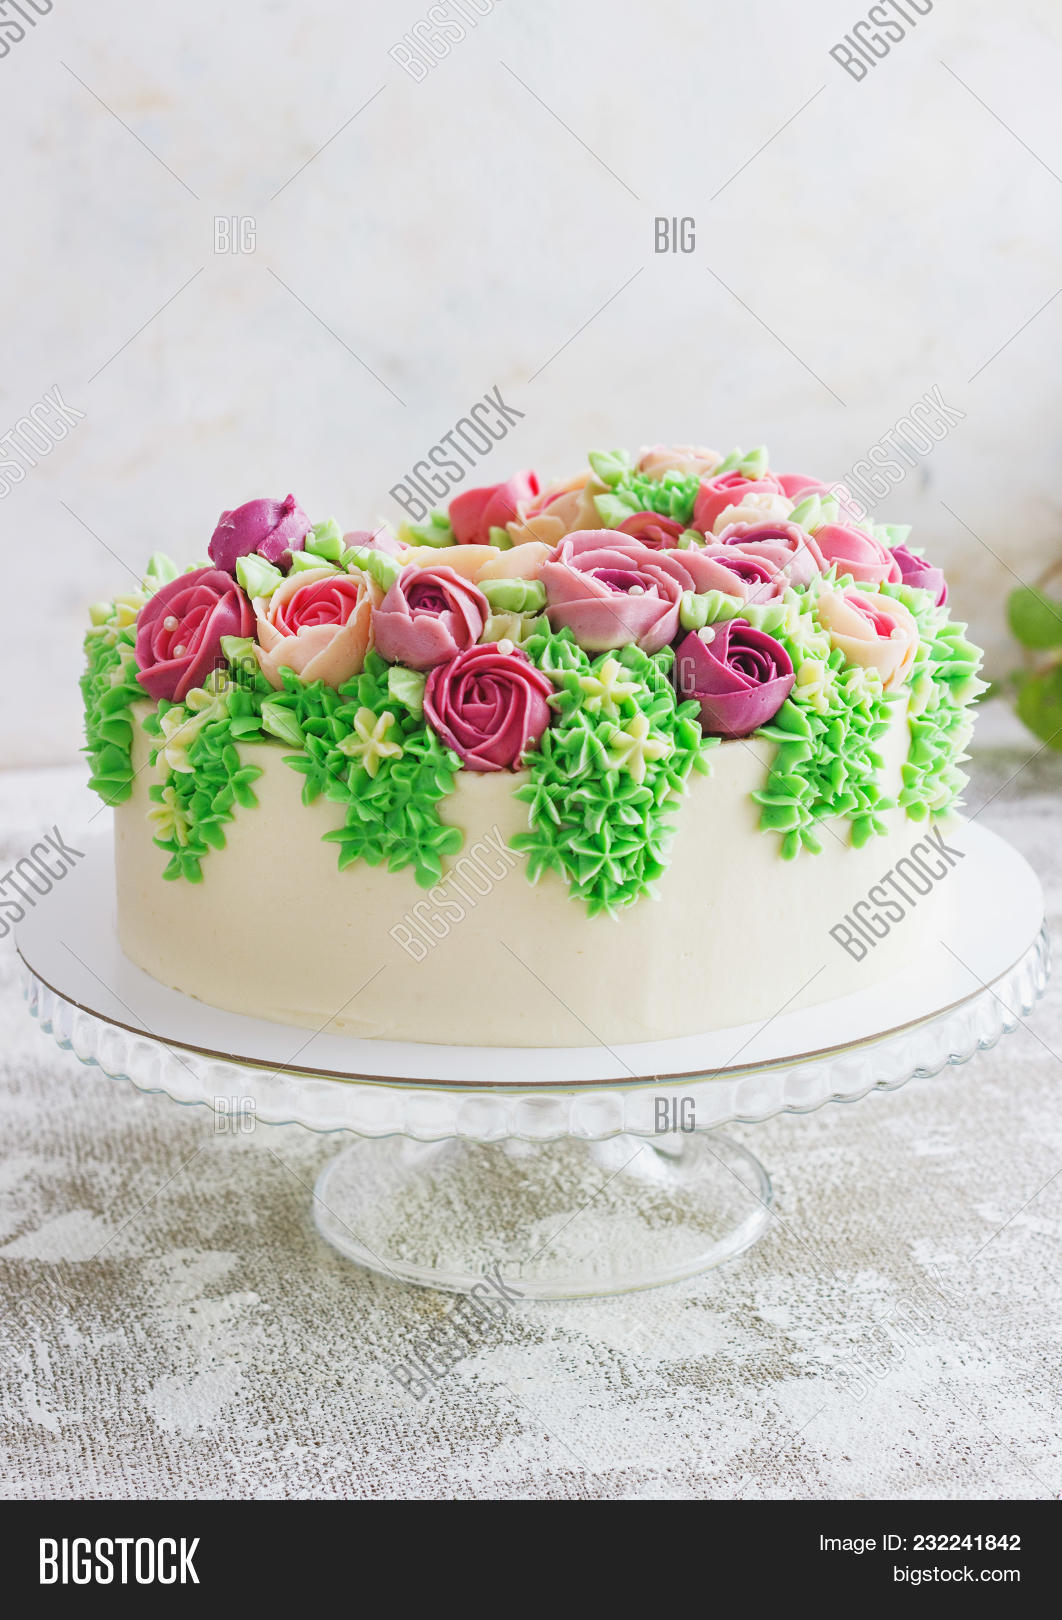 Birthday cake flowers image photo free trial bigstock birthday cake with flowers rose on white background malaysian flowers izmirmasajfo